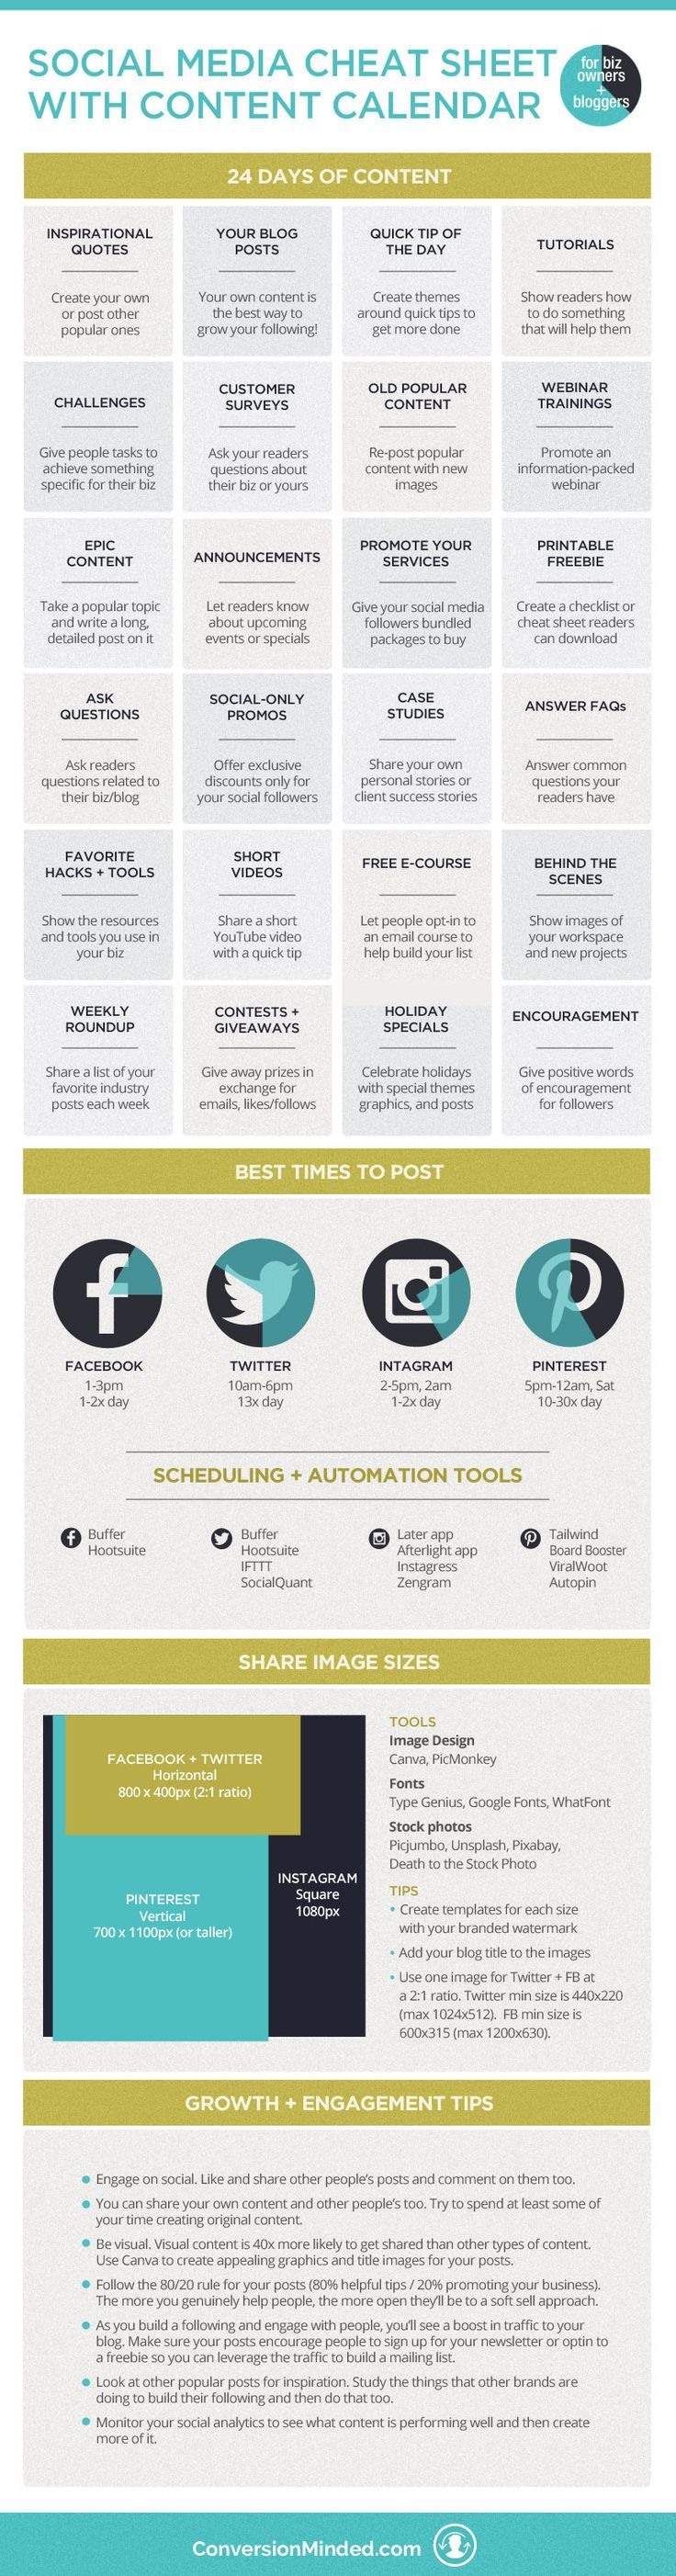 A social media cheat sheet for bloggers and entrepreneurs so you know what to post and when, plus tools to help you automate everything from scheduling, to growth and engagement, and creating images. Click through to see all the tips!